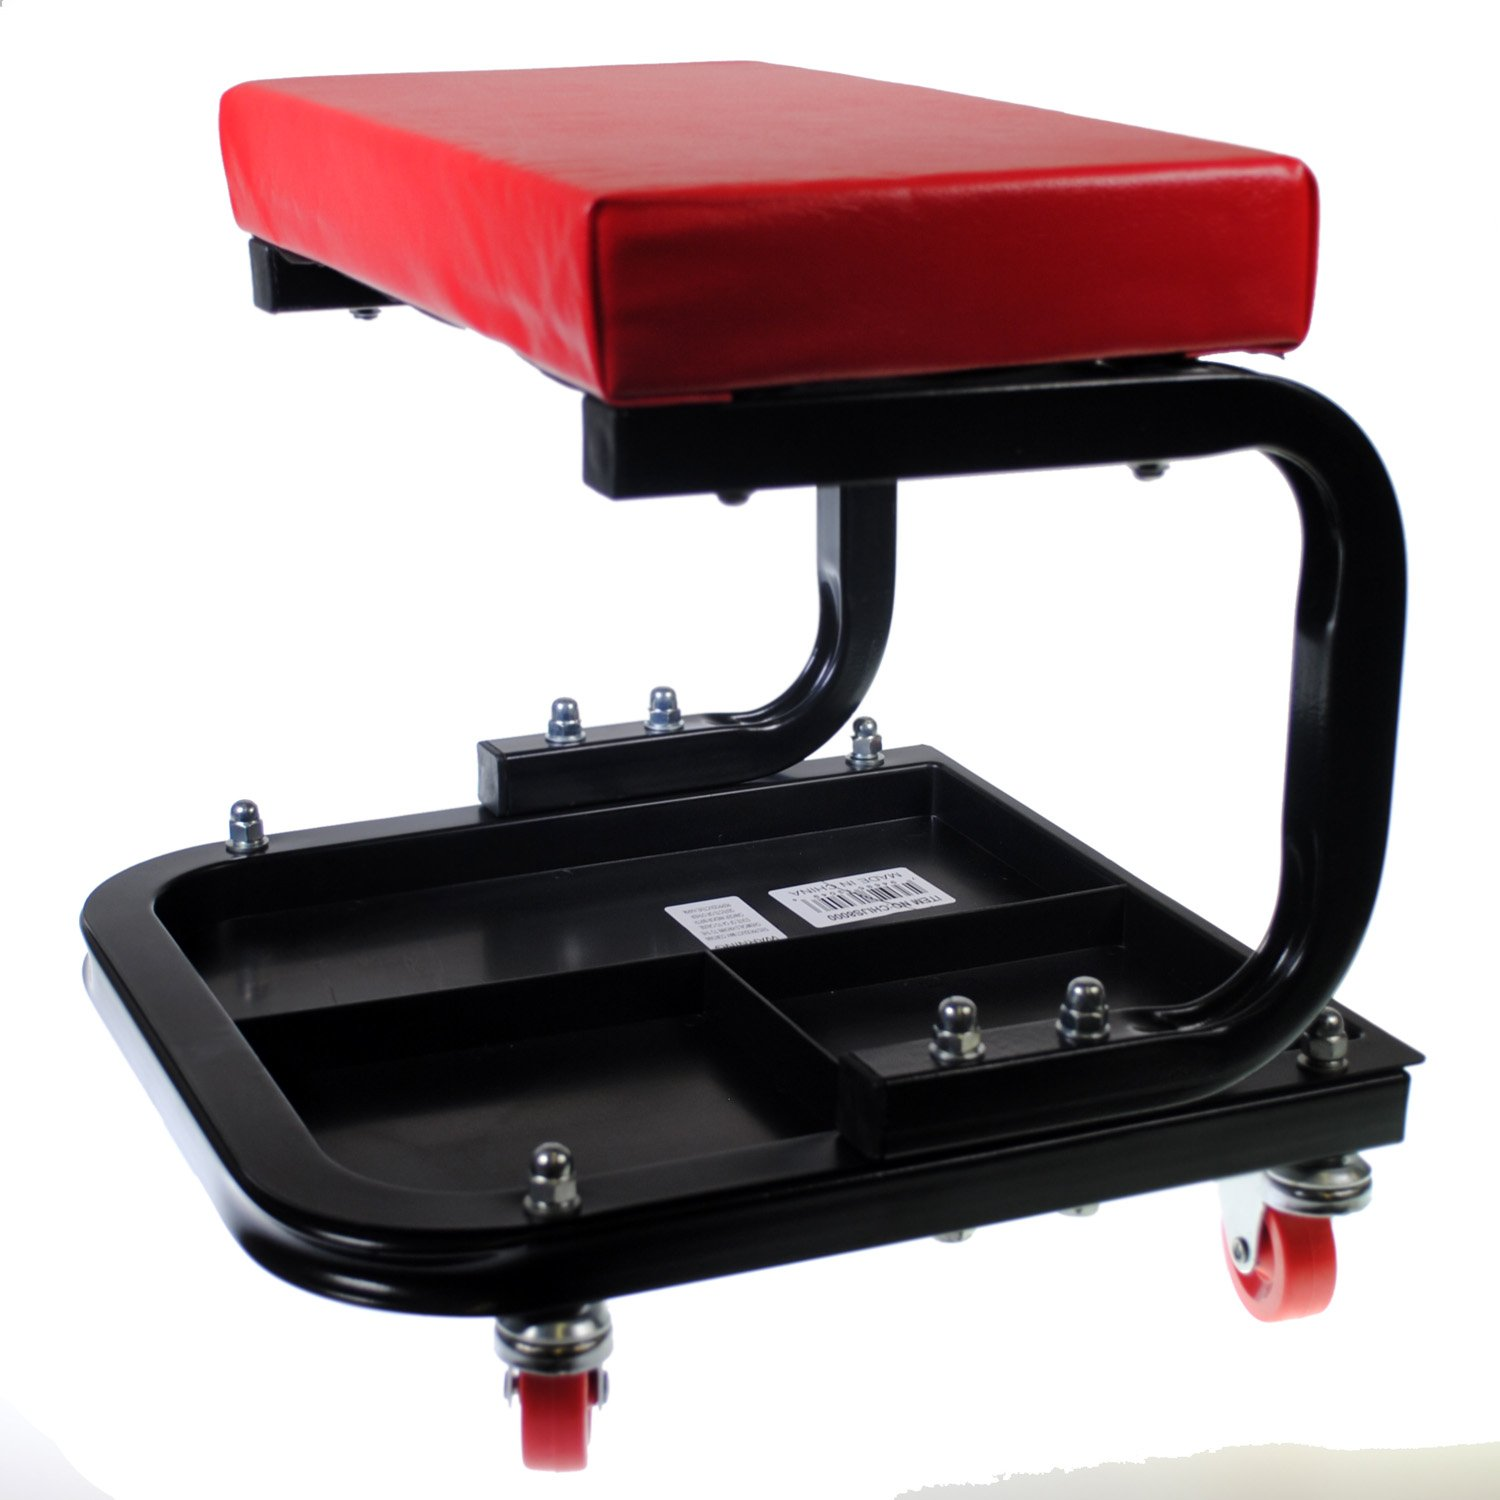 Pit Bull Rolling Mechanic Creeper Seat with Onboard Storage - 250 lbs Capacity